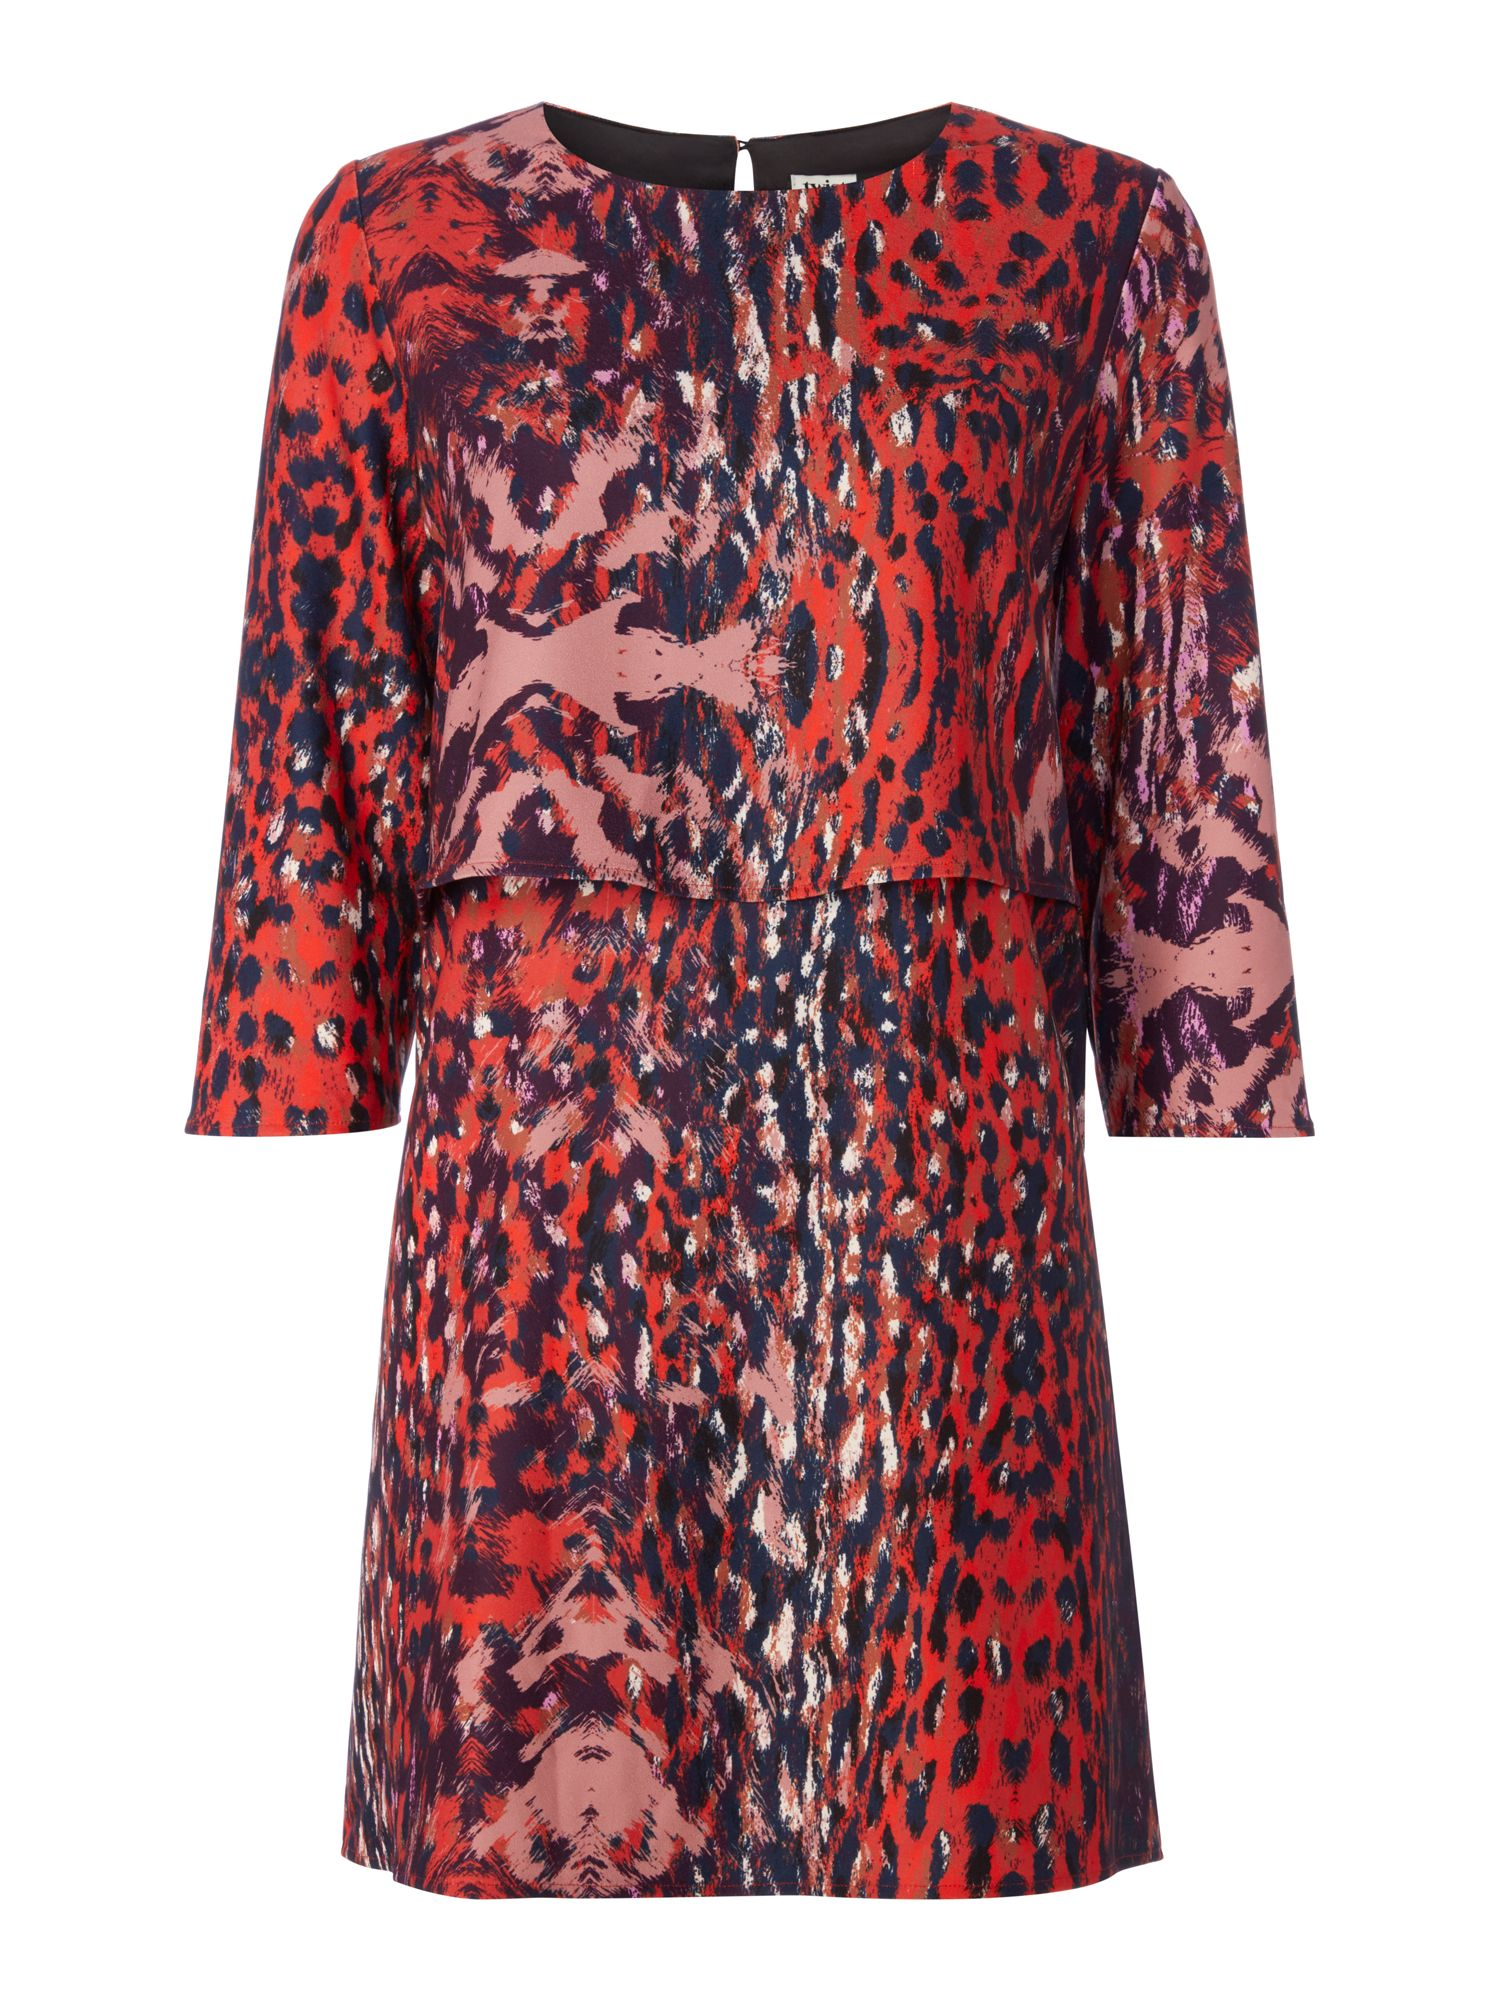 Twist and Tango Sasha Leopard Print Dress, Multi-Coloured